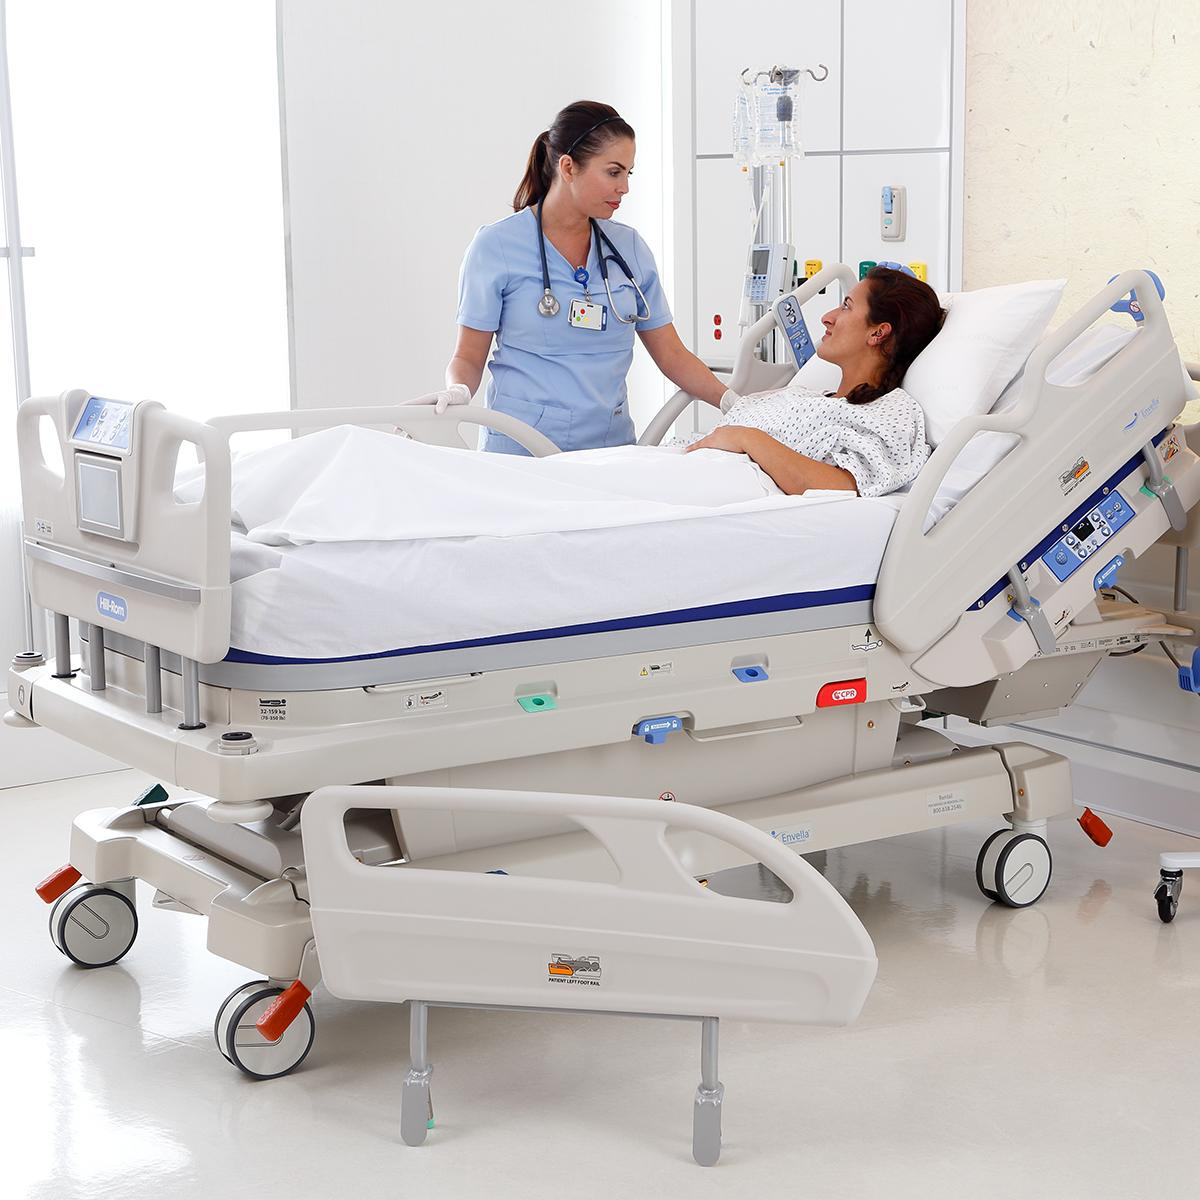 A hospital nurse speaks with her recovering wound care patient, who is lying in an Envella bed. The bed's siderails are down.